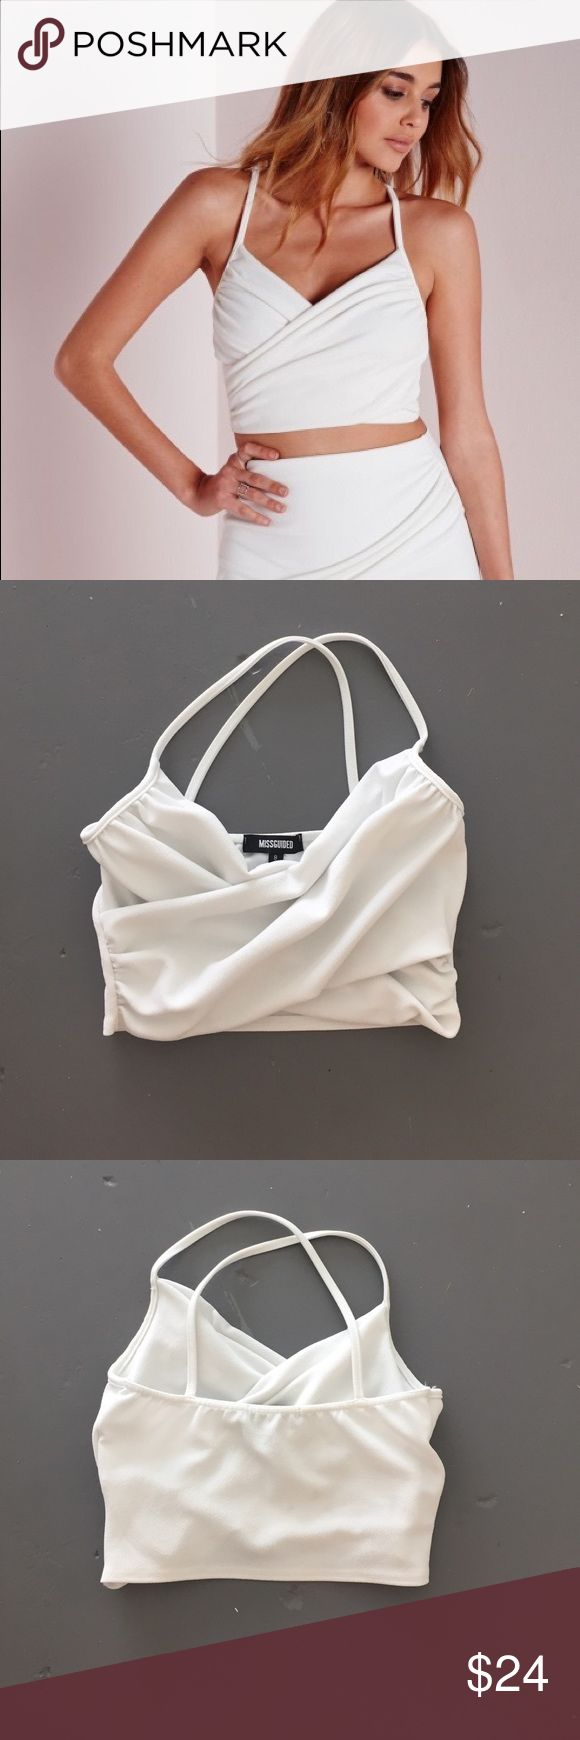 Missguided Crop Top Missguided wrap over Crop Top. Crepe material. Size 4. White. Missguided Tops Crop Tops